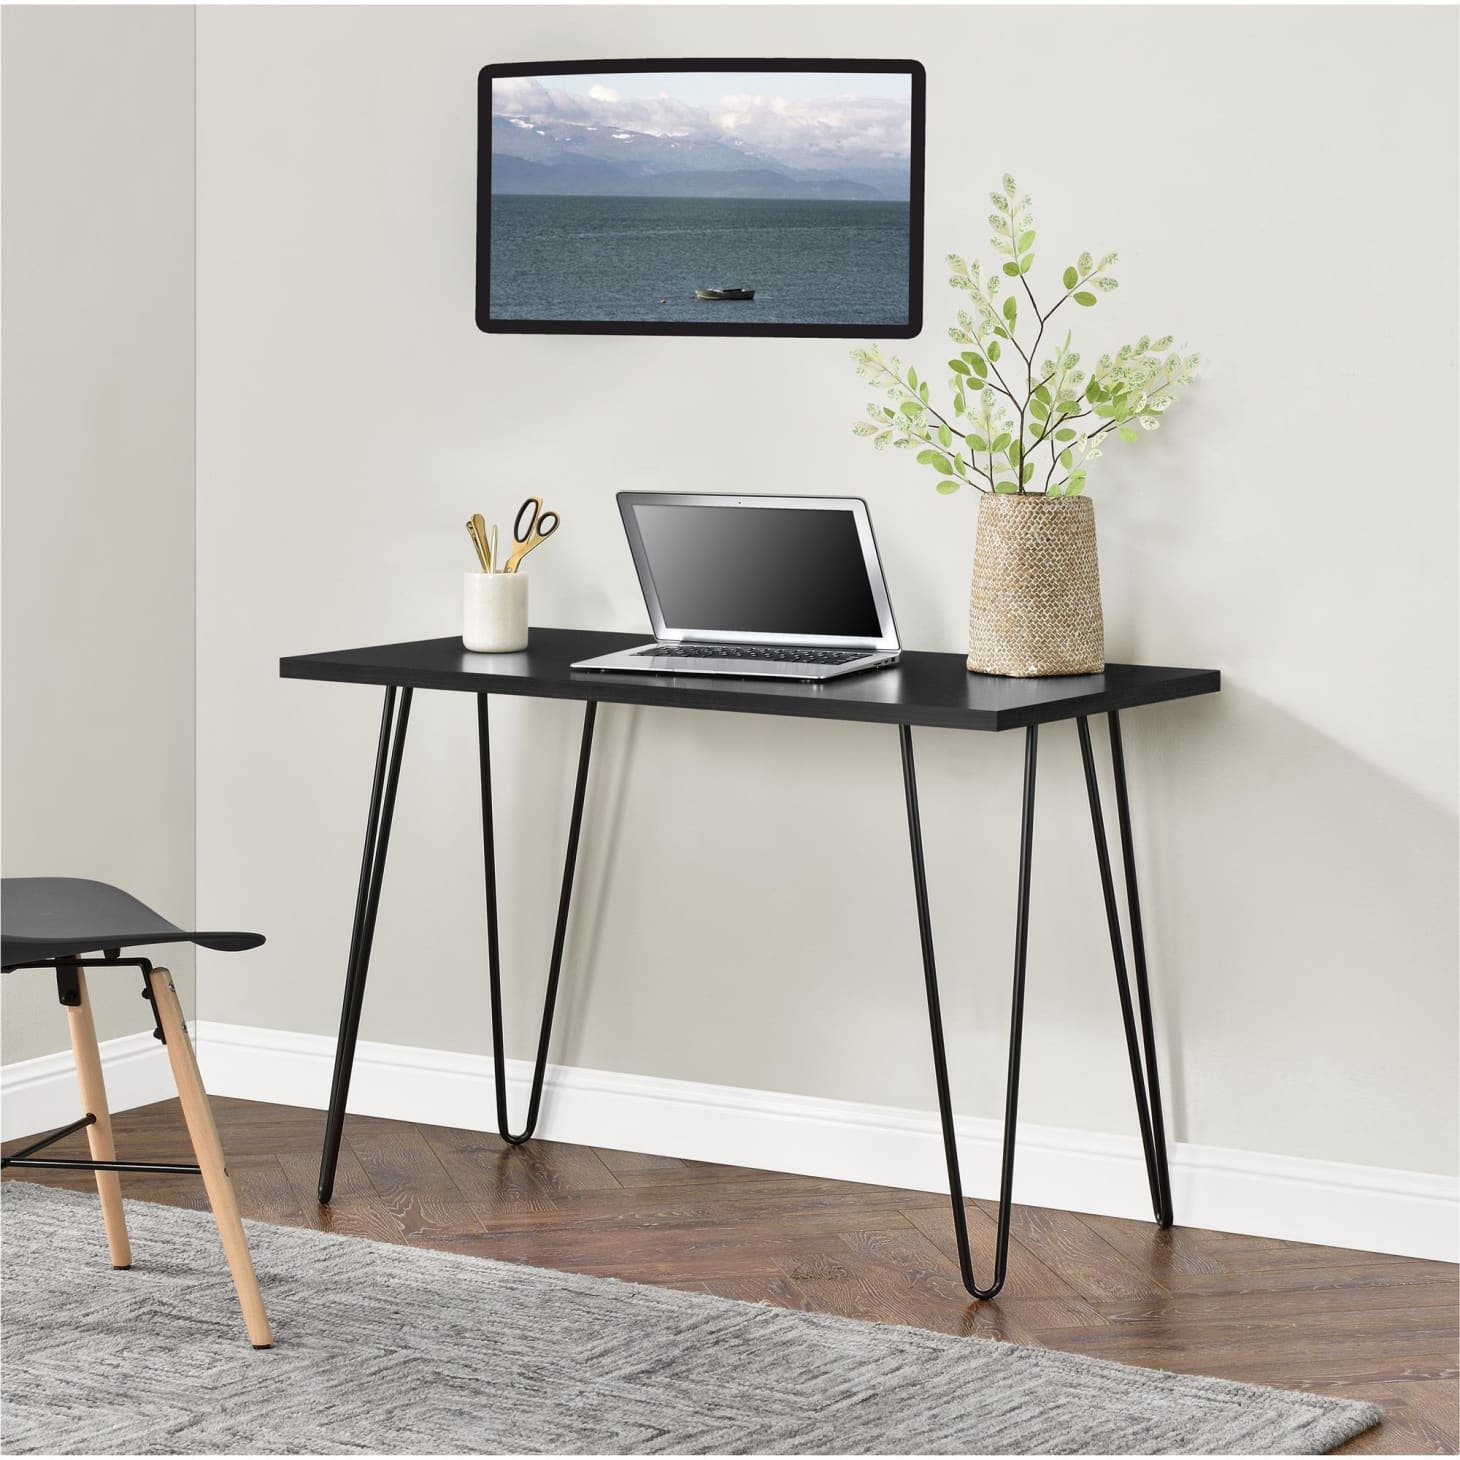 Allmodern Furniture Sale Home Deals February 2019 Apartment Therapy